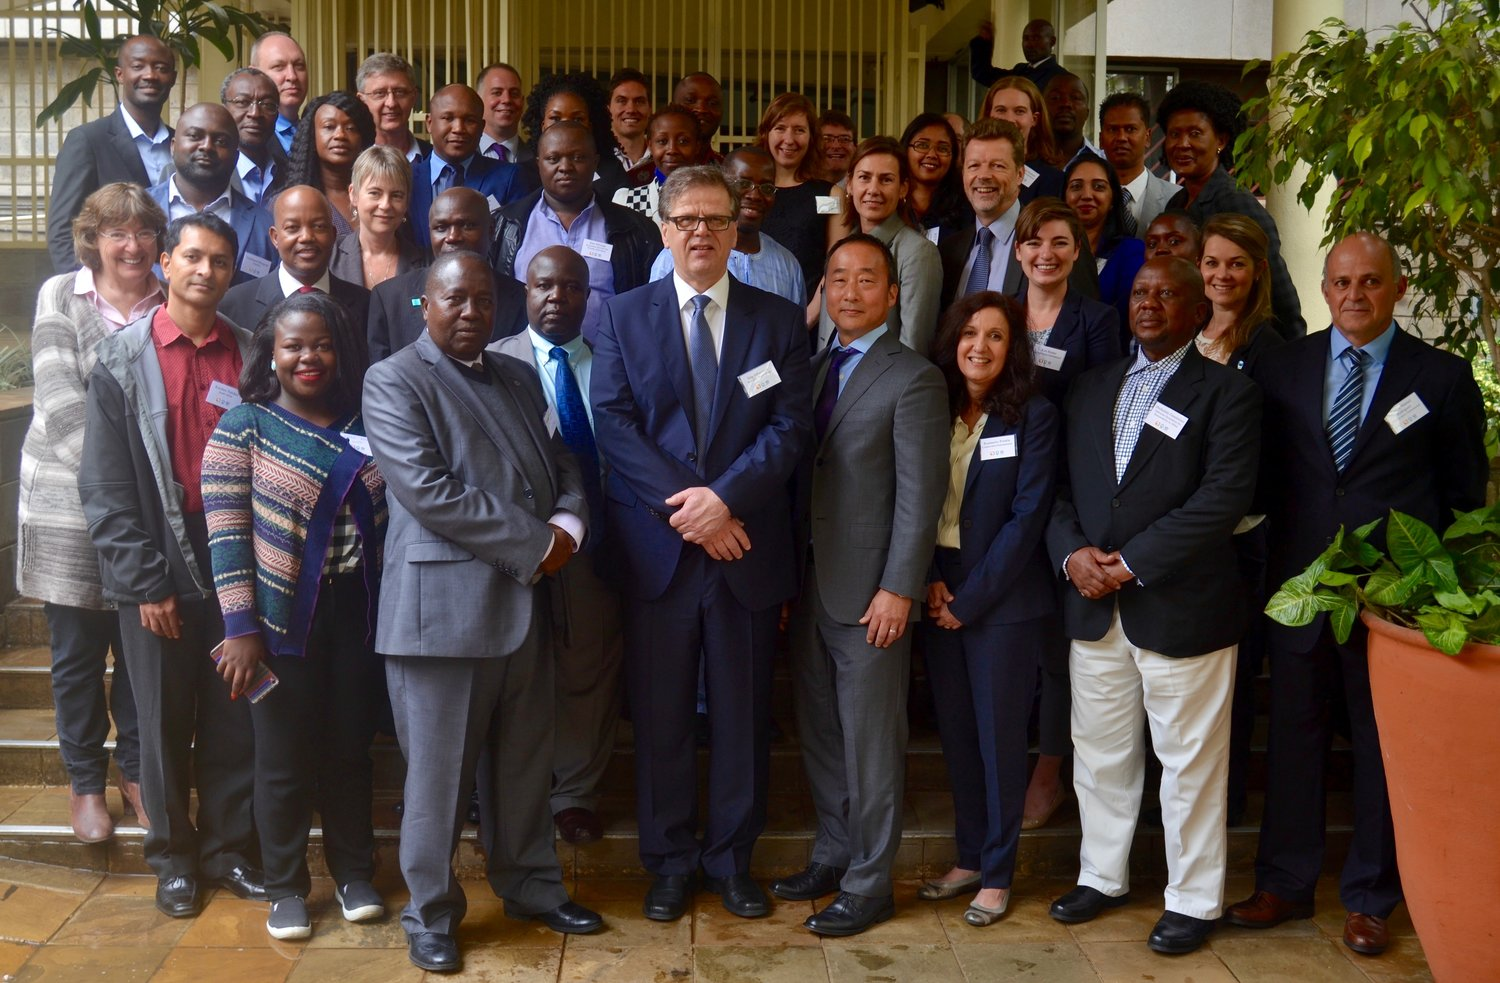 """REPRESENTATIVES FROM CONSERVATION INTERNATIONAL,THE WORLD BANK WAVES PROGRAM AND 12 AFRICAN NATIONS GATHER TOGETHER IN NAIROBI FOR THE """"REGIONAL PERSPECTIVES ON NATURAL CAPITAL ACCOUNTING"""" WORKSHOP JUNE 21-23, 2016 IN NAIROBI, KENYA."""